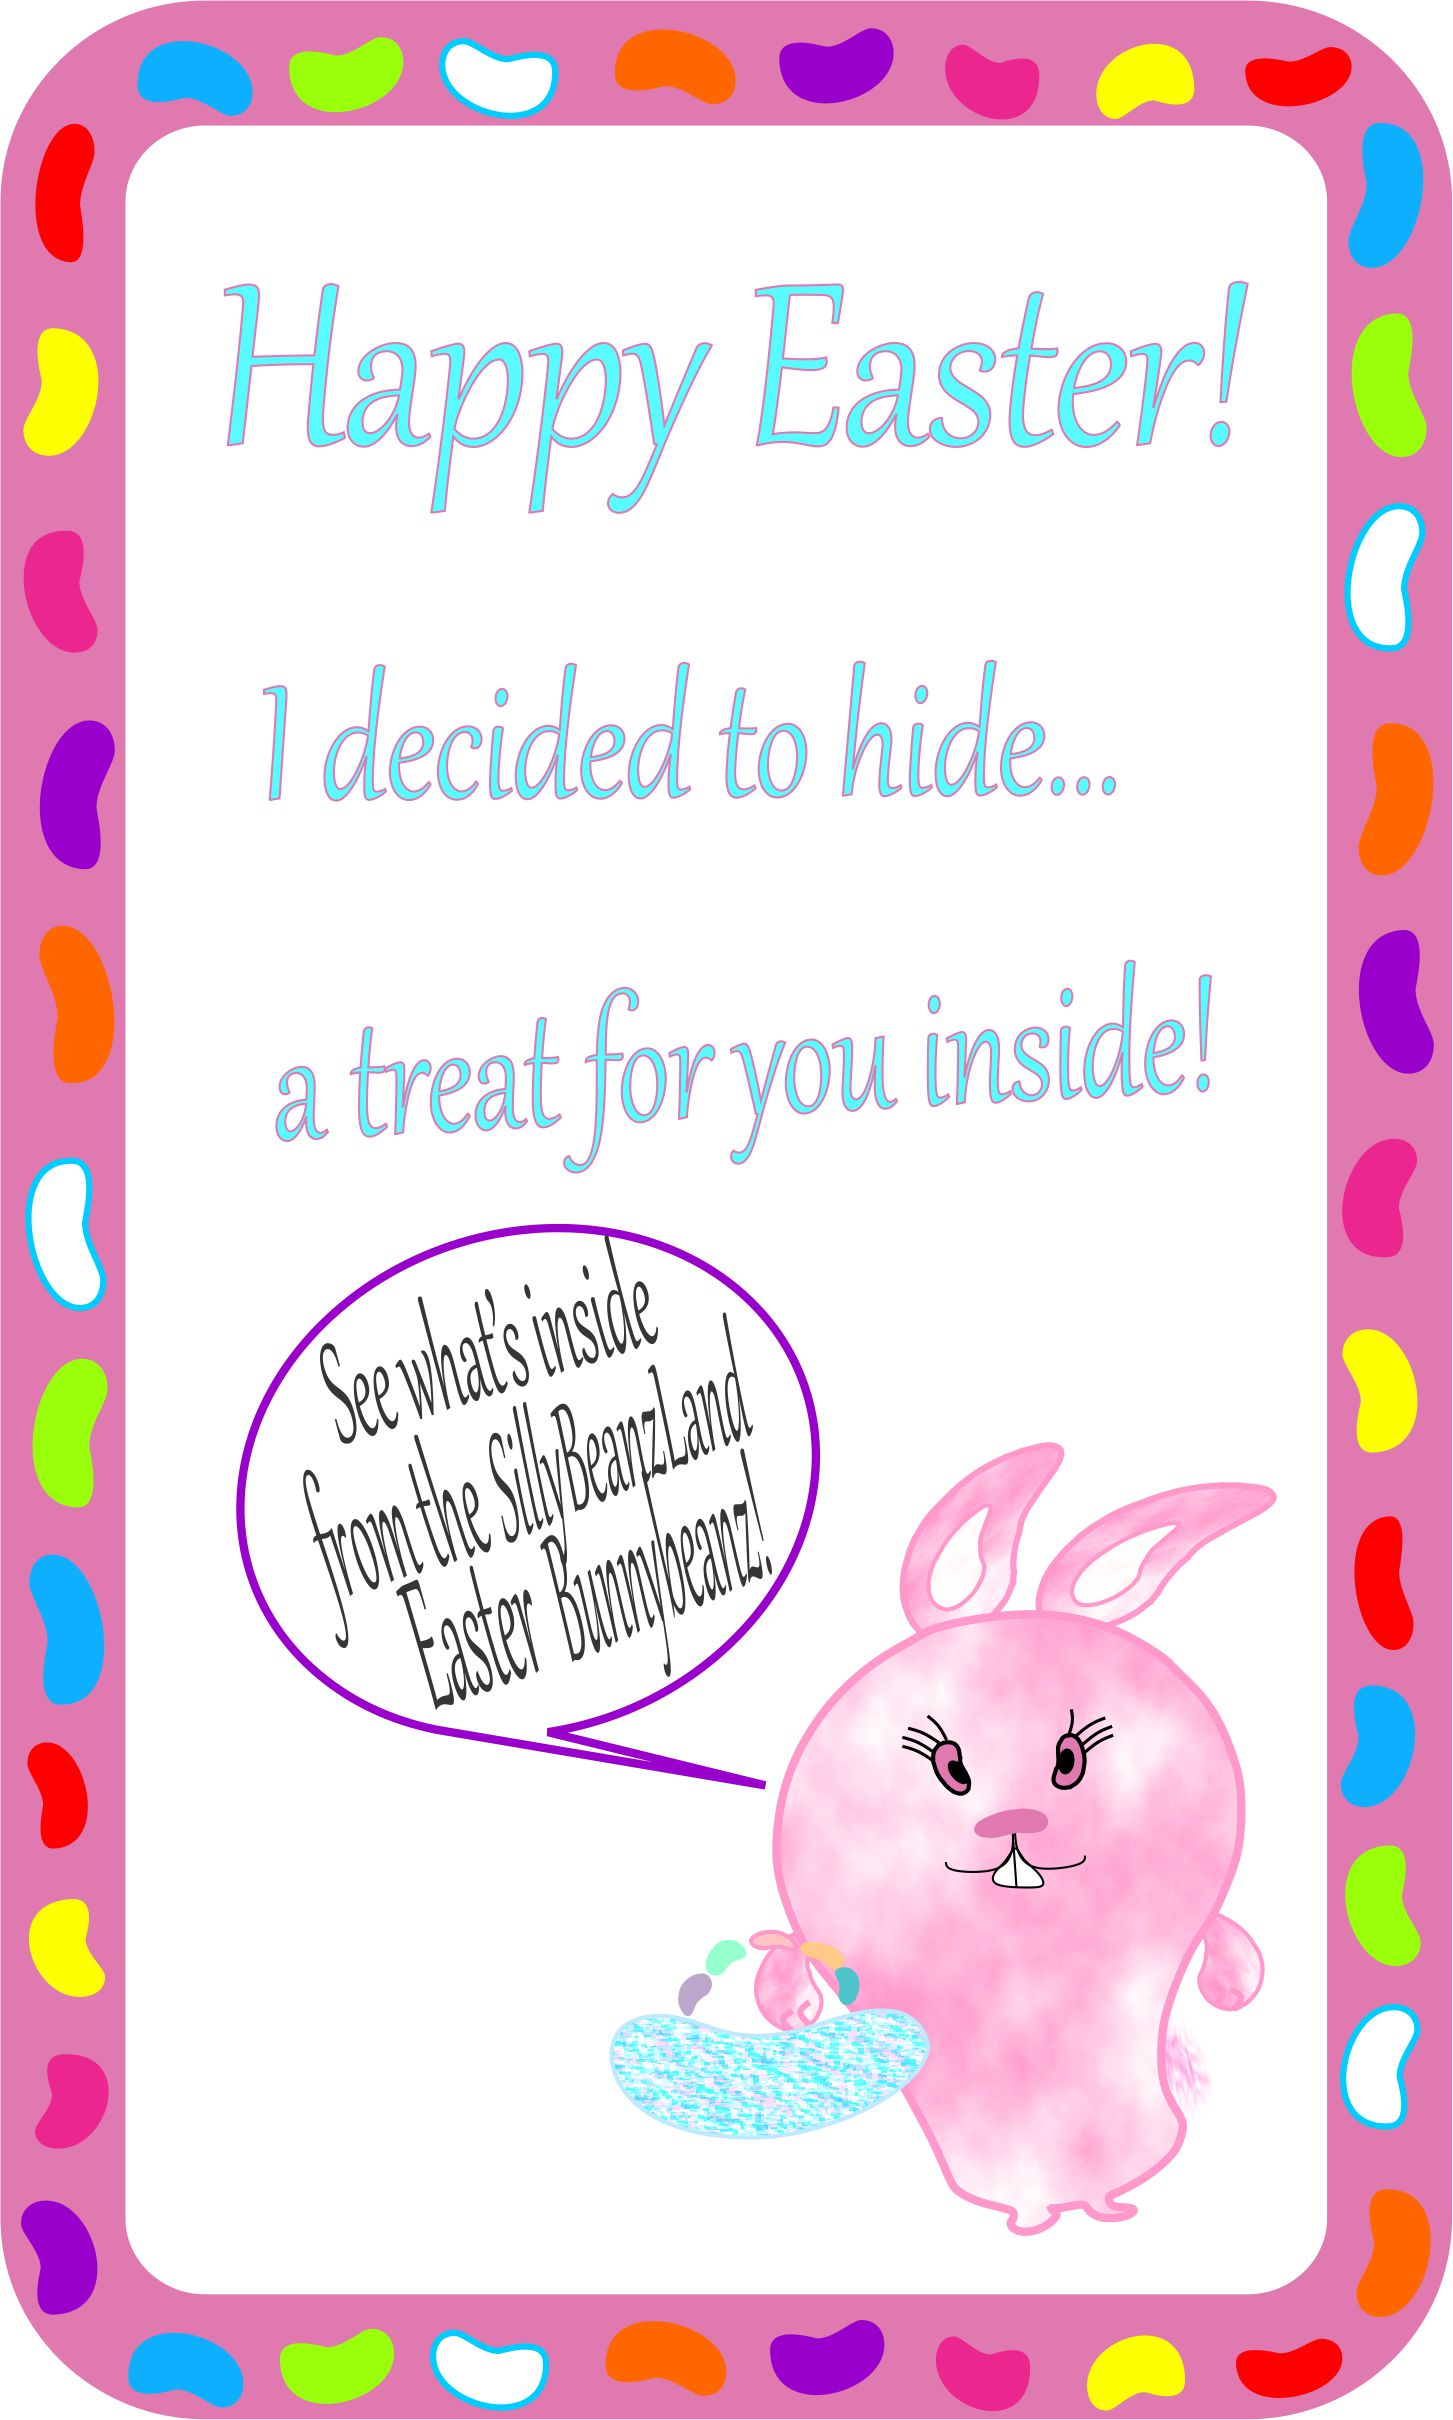 photo regarding Easter Card Printable known as Easter Card Produces Bunny Gles and Egg Holder! -